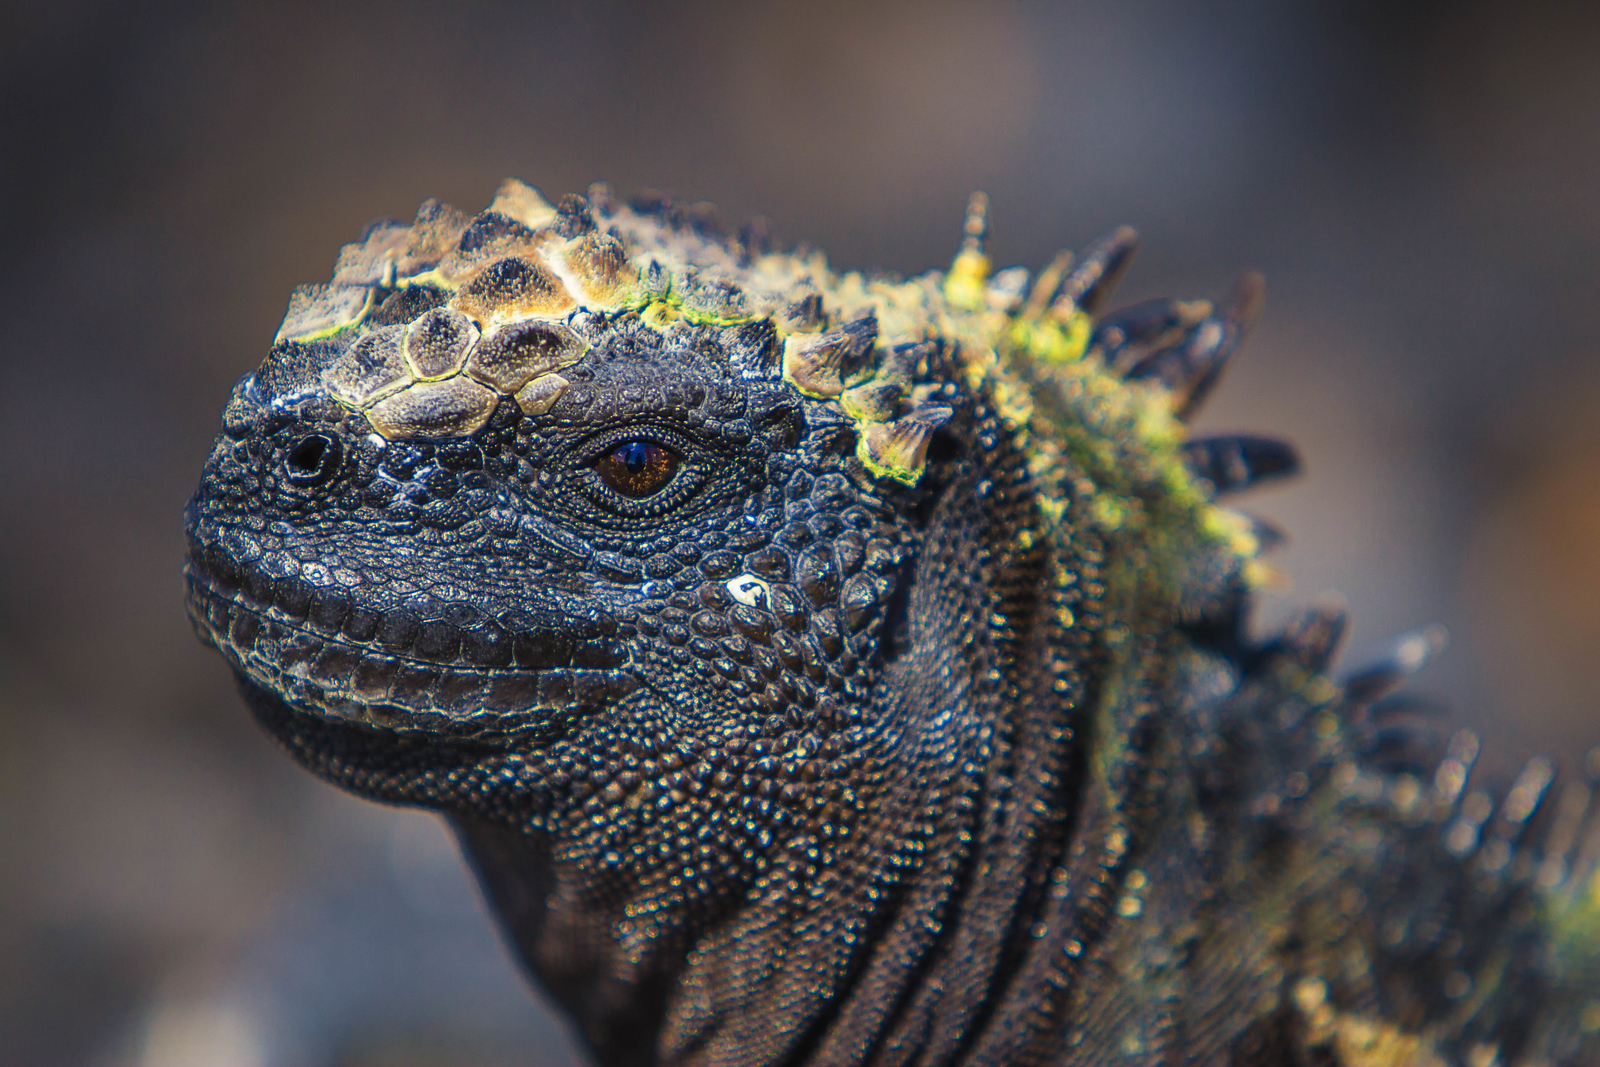 A closeup of the Marine Iguana in the Galapagos Islands